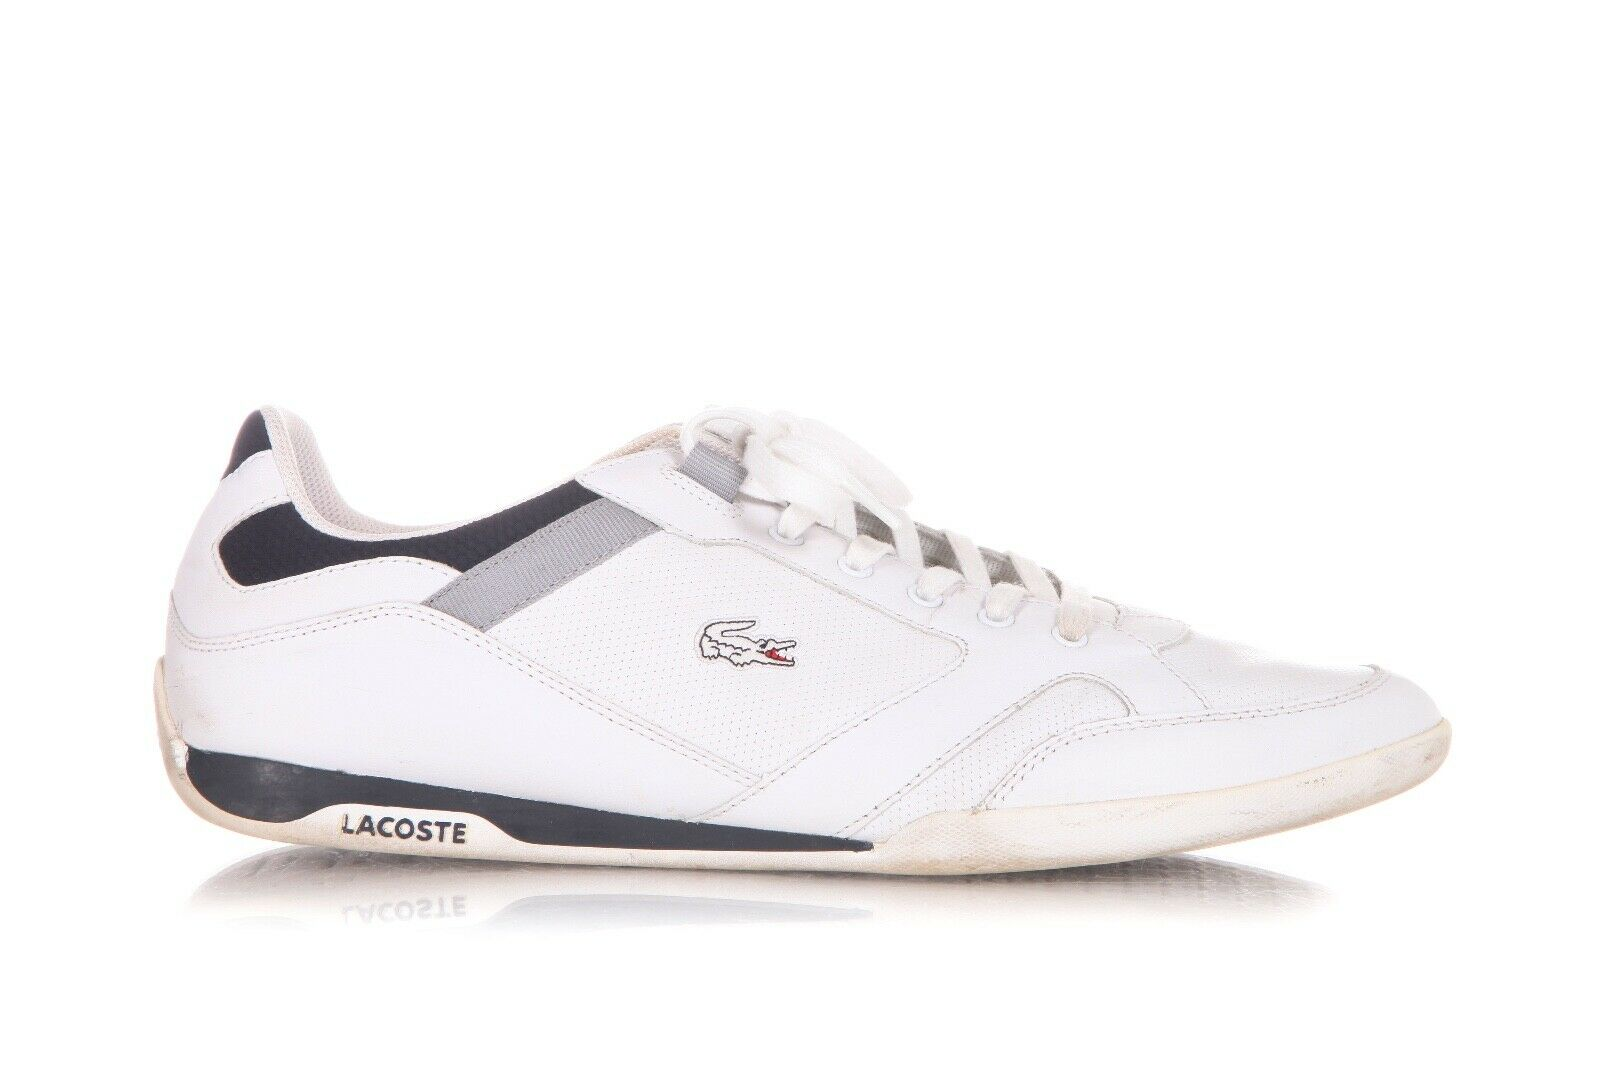 LACOSTE White Tennis Shoes Leather Lace Up Sneakers Size 47